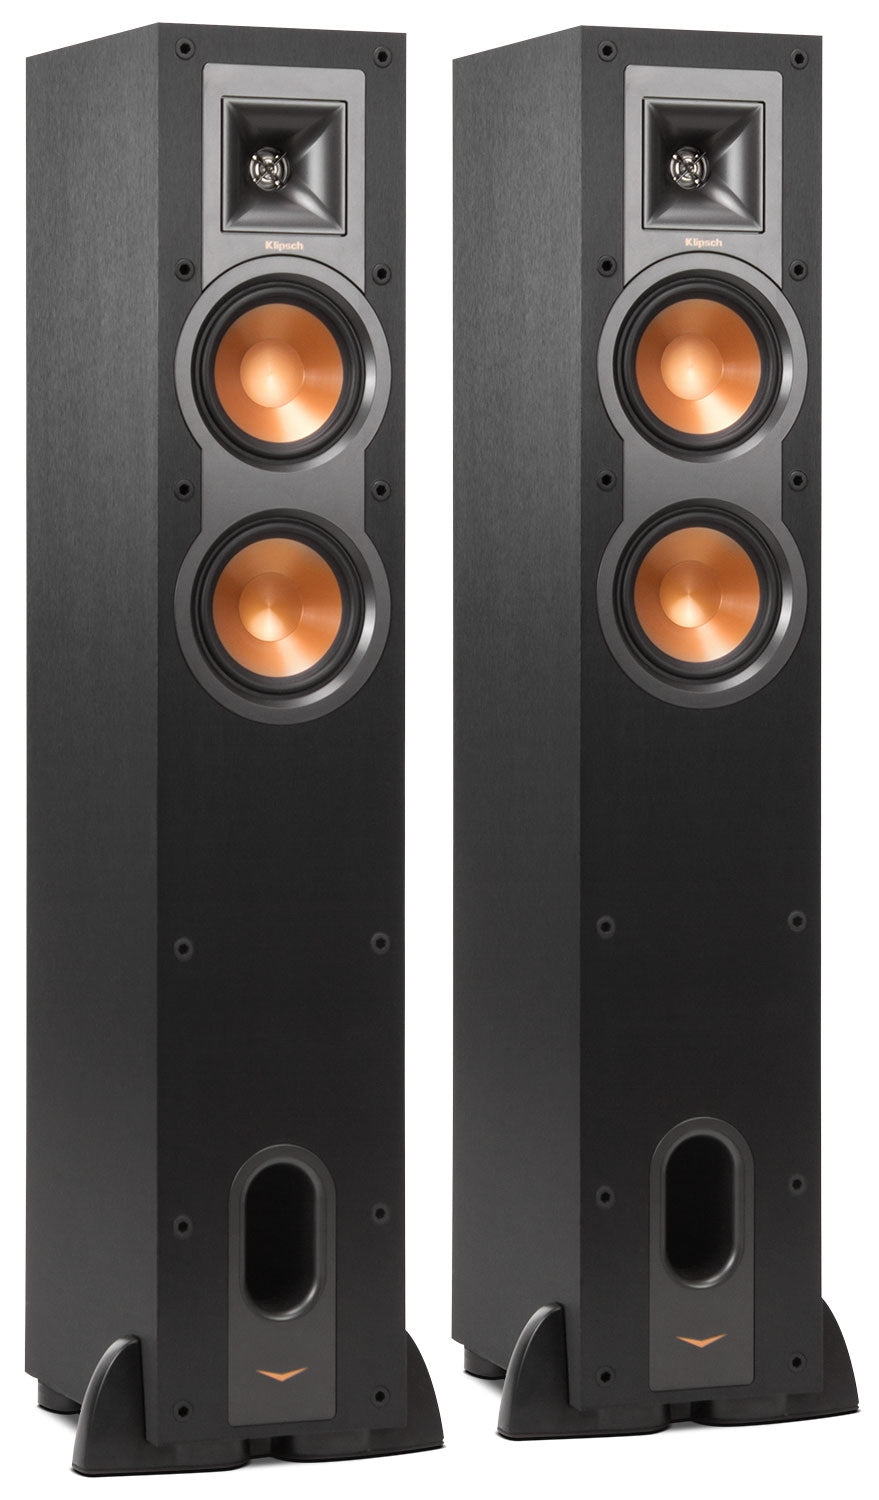 Dating klipsch speakers